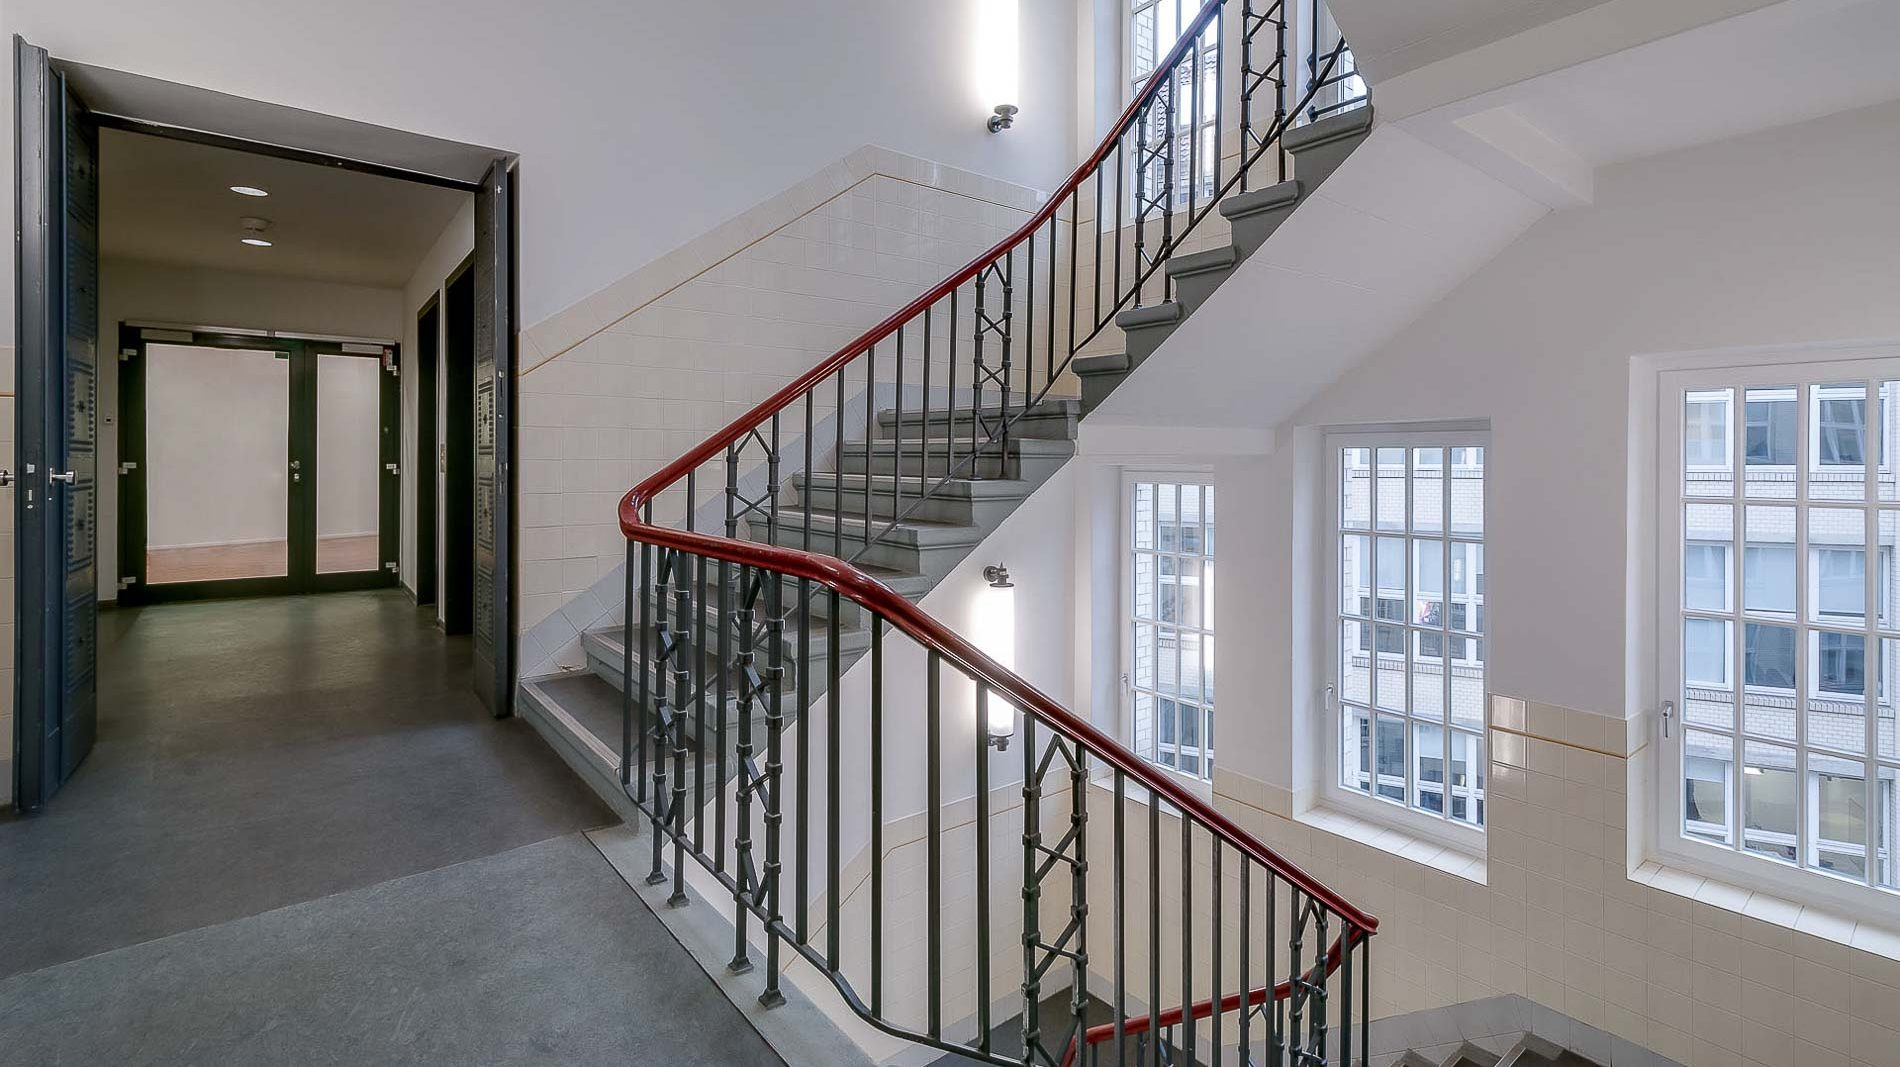 Stair Case in a Publisher's Building - Architectural Photography